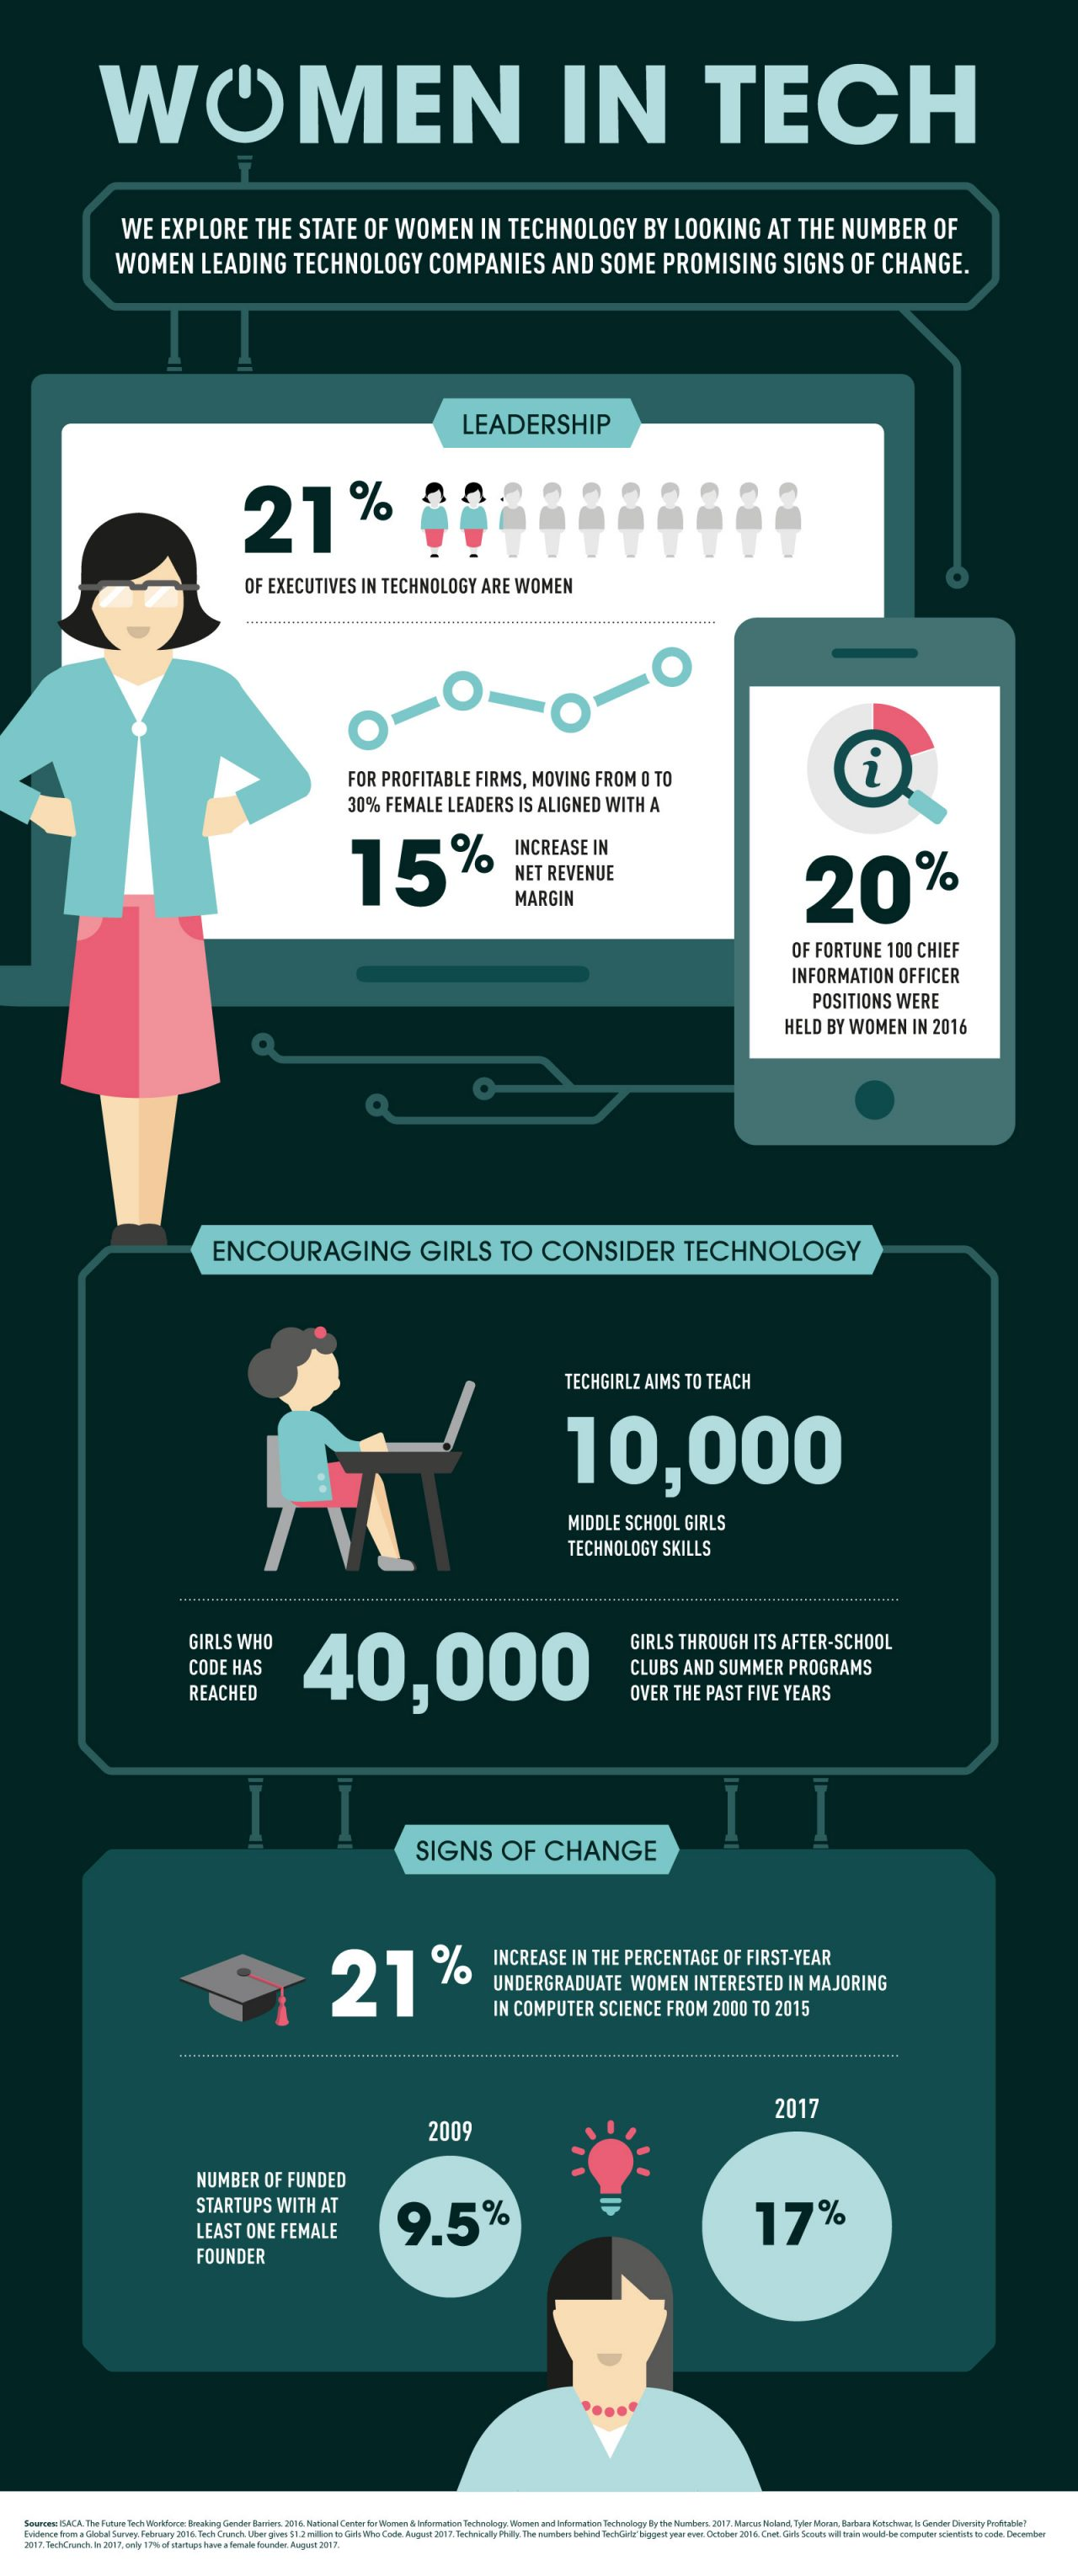 Statistics about women's participation and growth in the tech industry